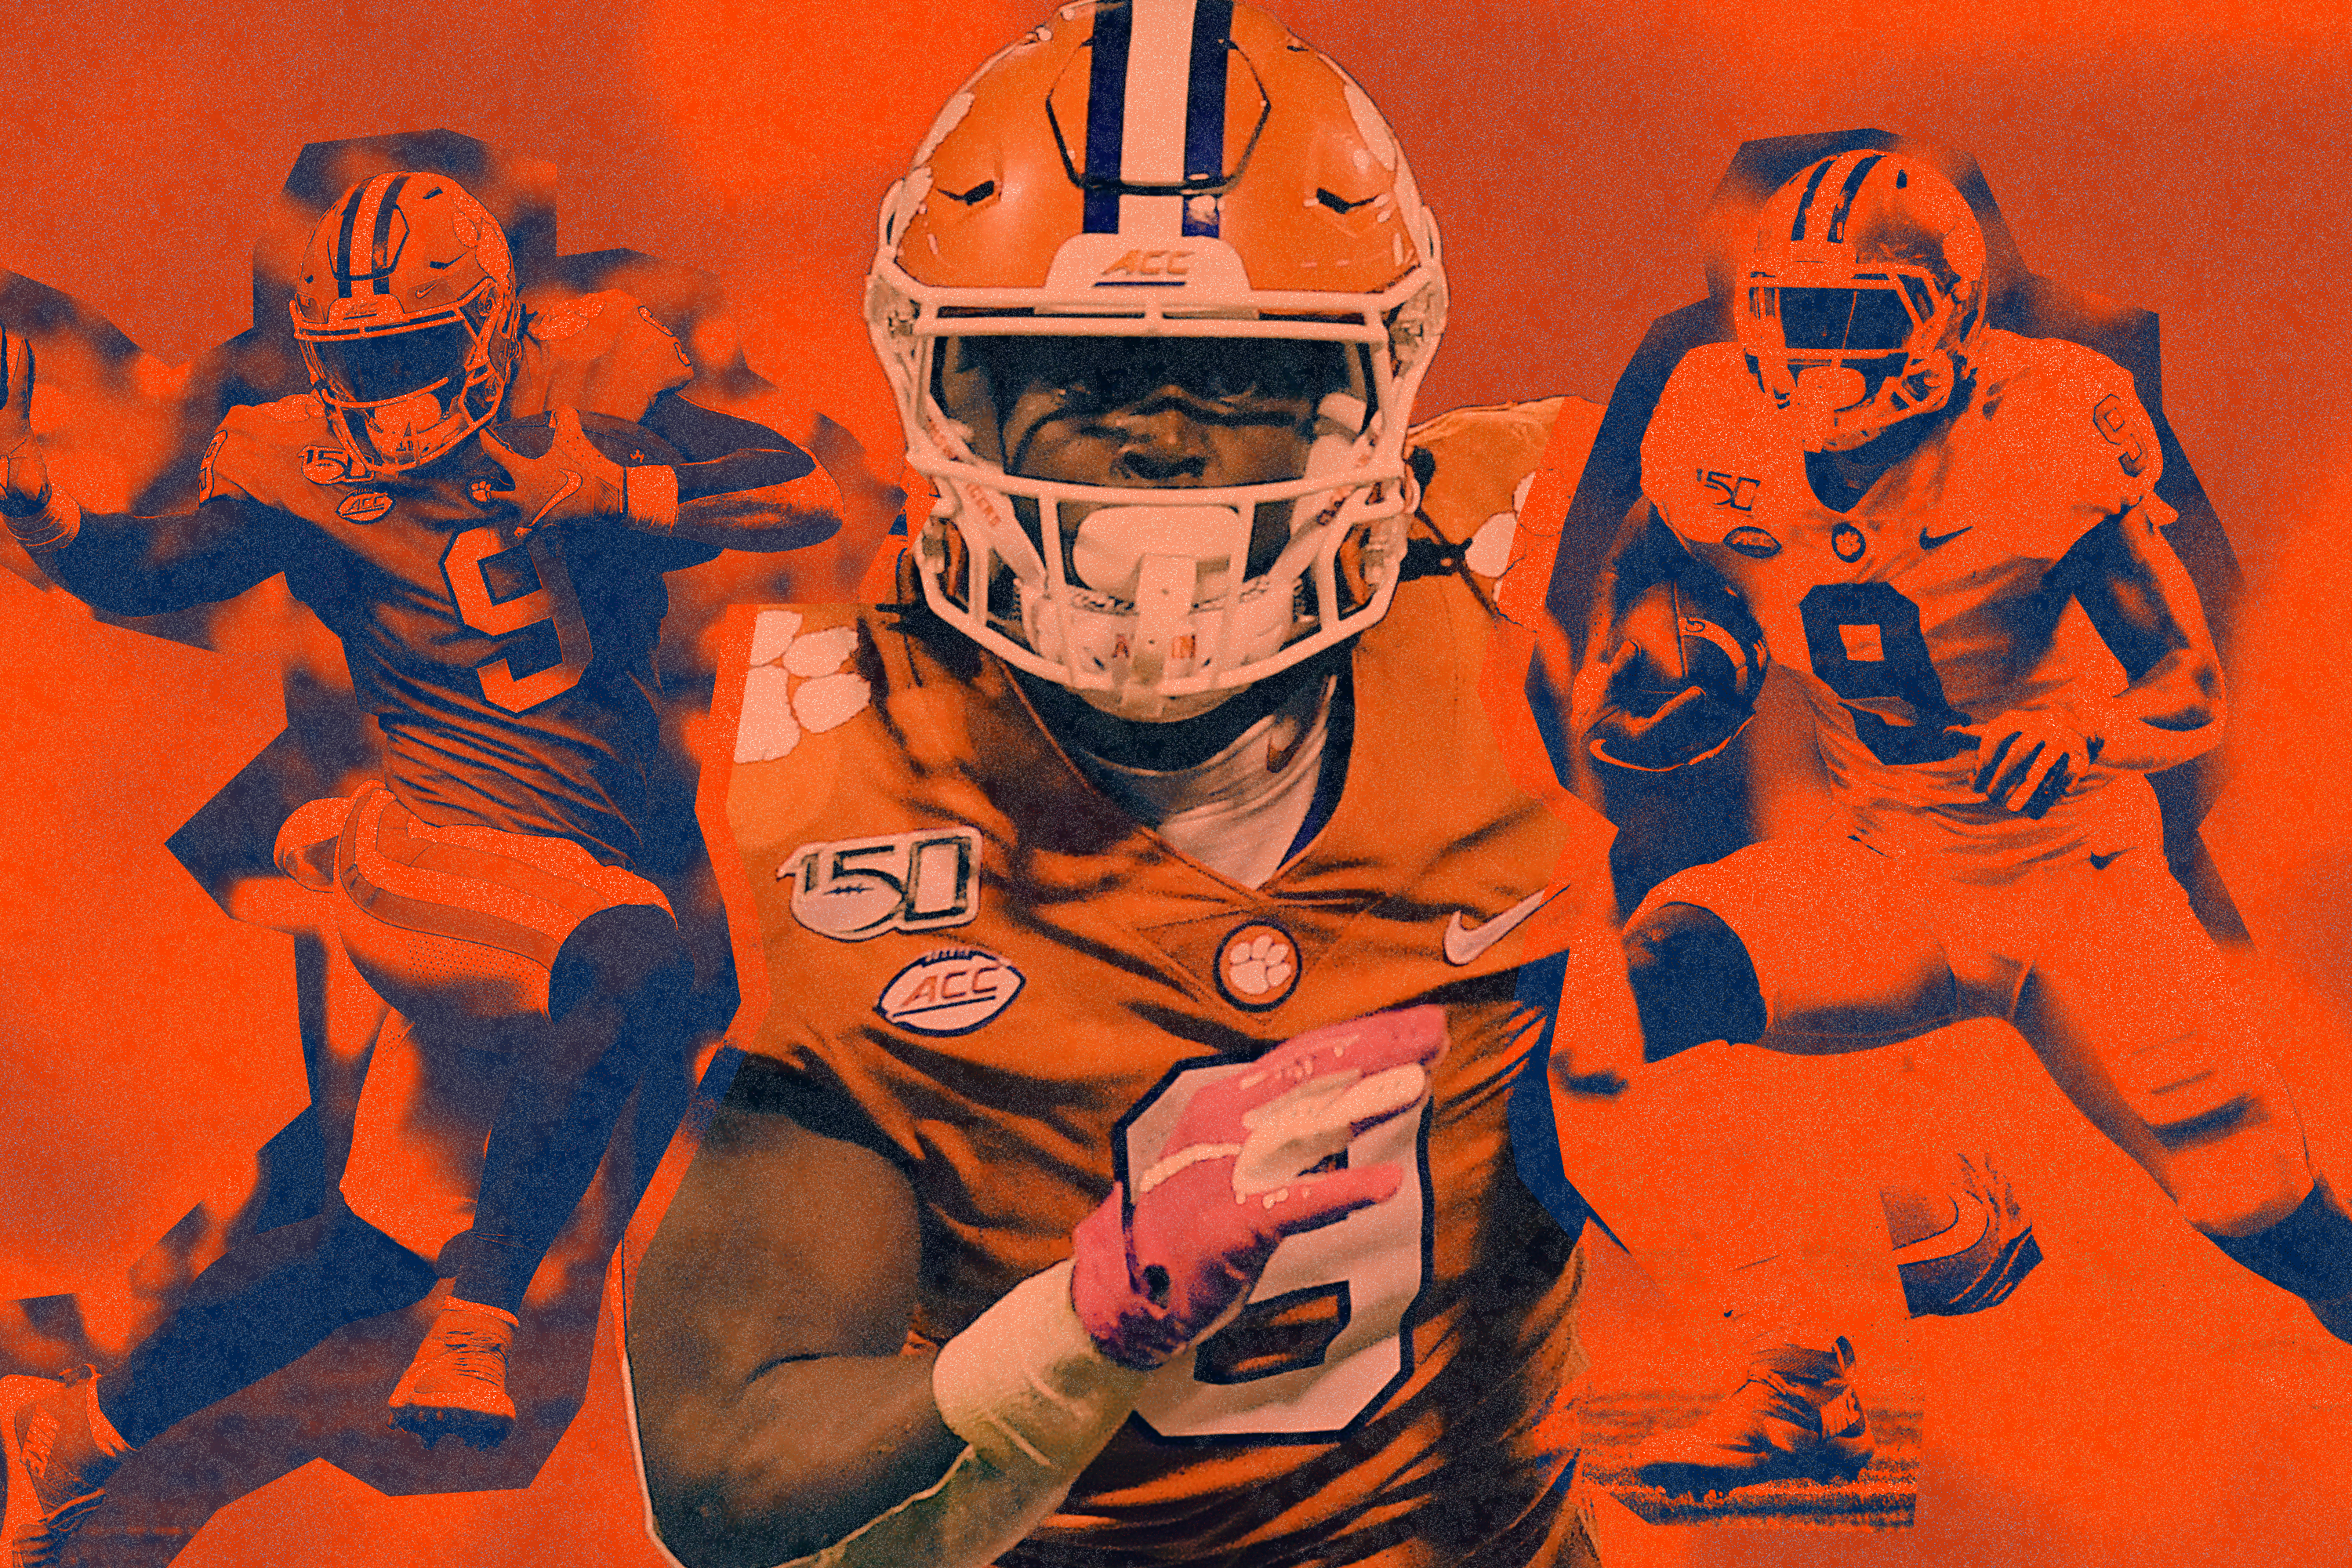 Travis Etienne Clemson S Forgotten Star Can Change The Game At Any Time Bleacher Report Latest News Videos And Highlights